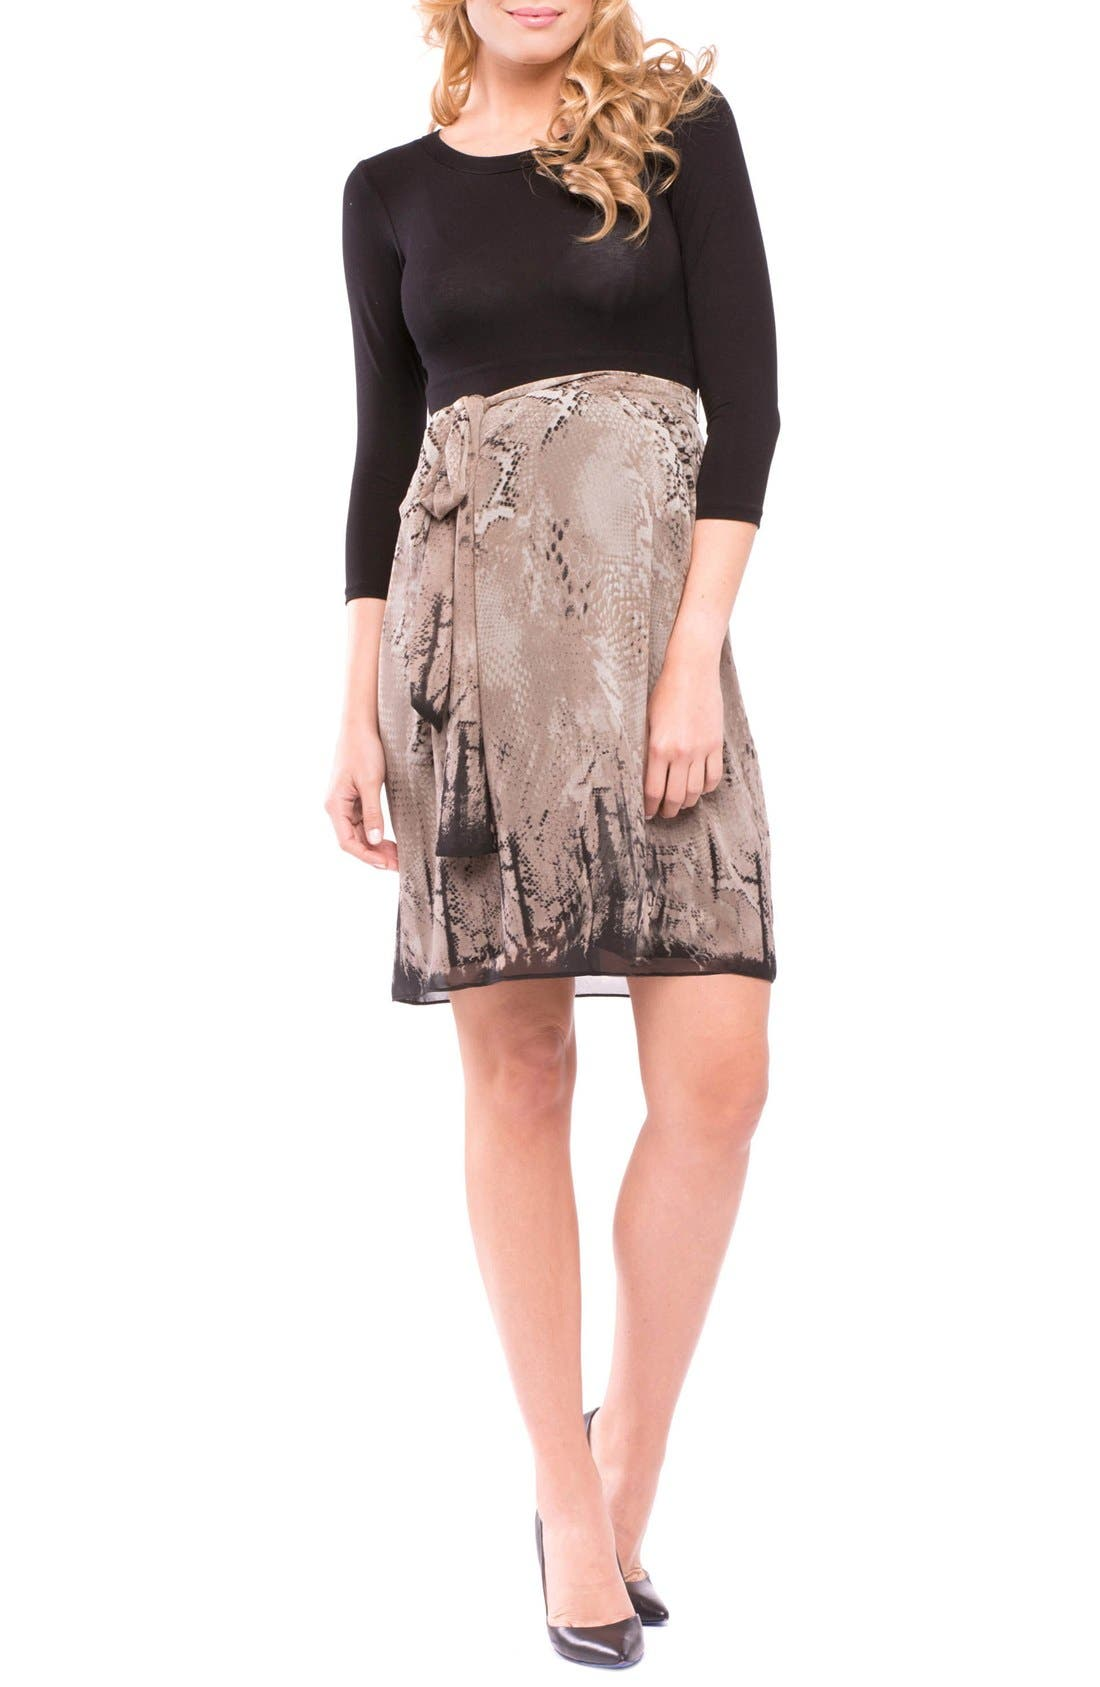 'Jolie' Maternity Dress,                         Main,                         color, Taupe/ Black Python